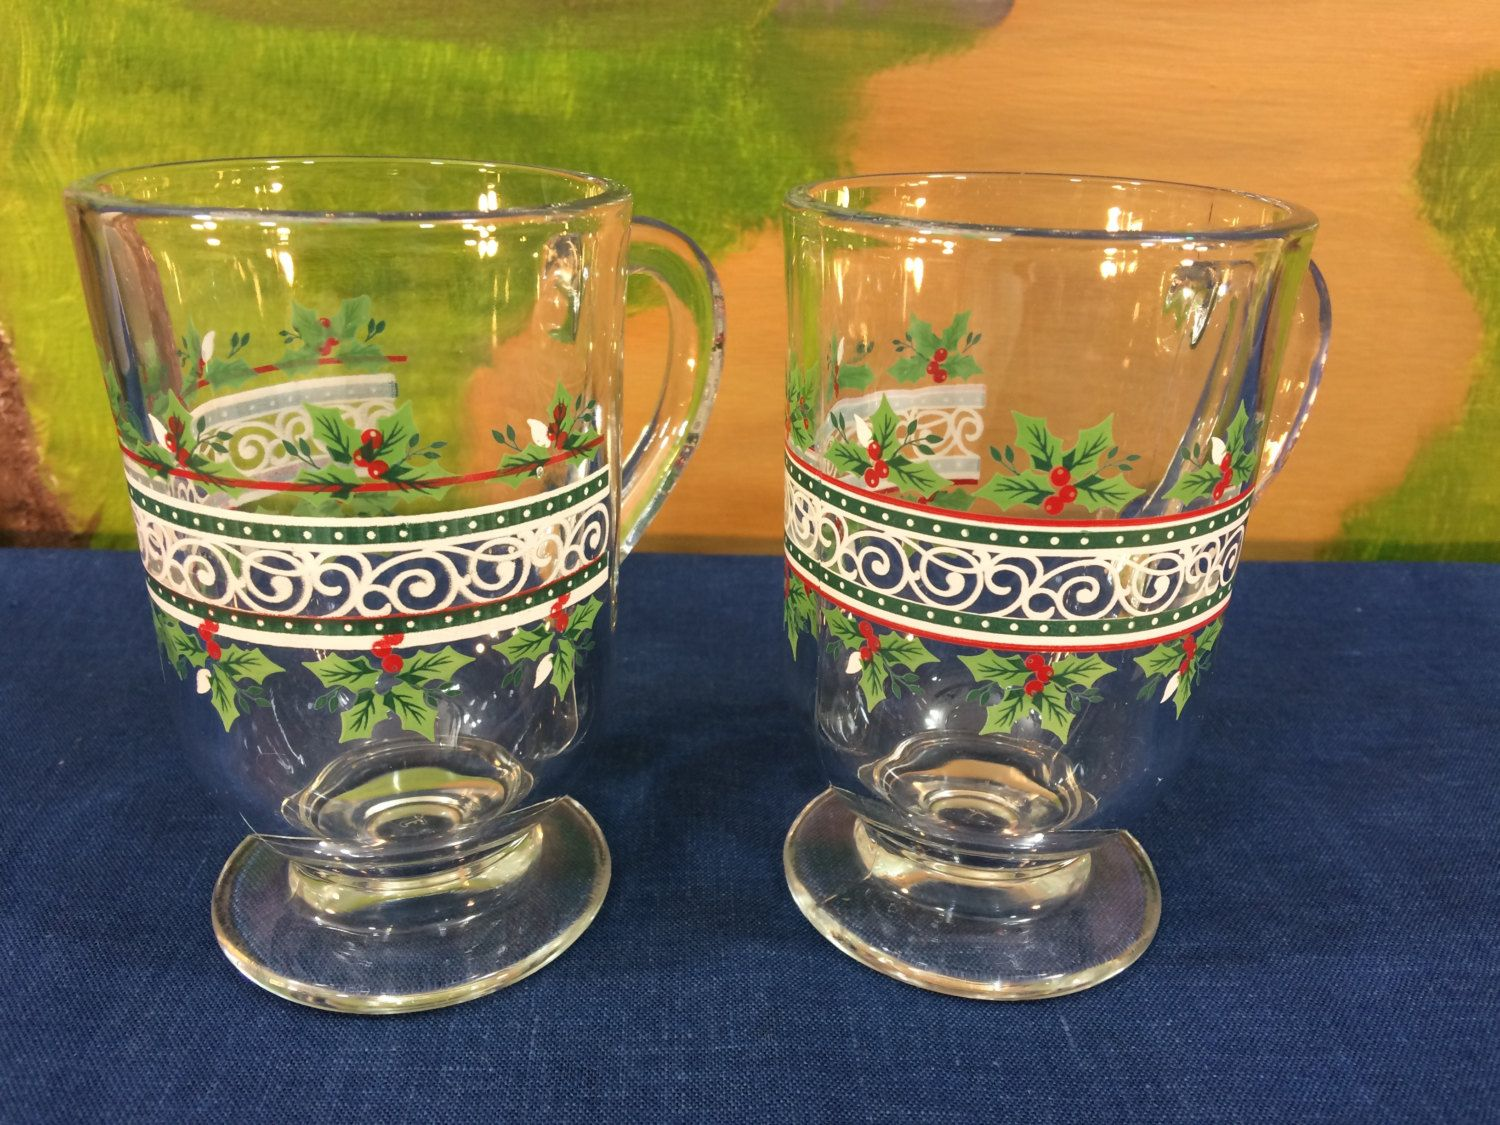 Vintage Libbey Christmas Pedestal Mugs Heavy Clear Glass Designed With Holly And Lace Set Of 2 by AdoptAKeepsake on Etsy